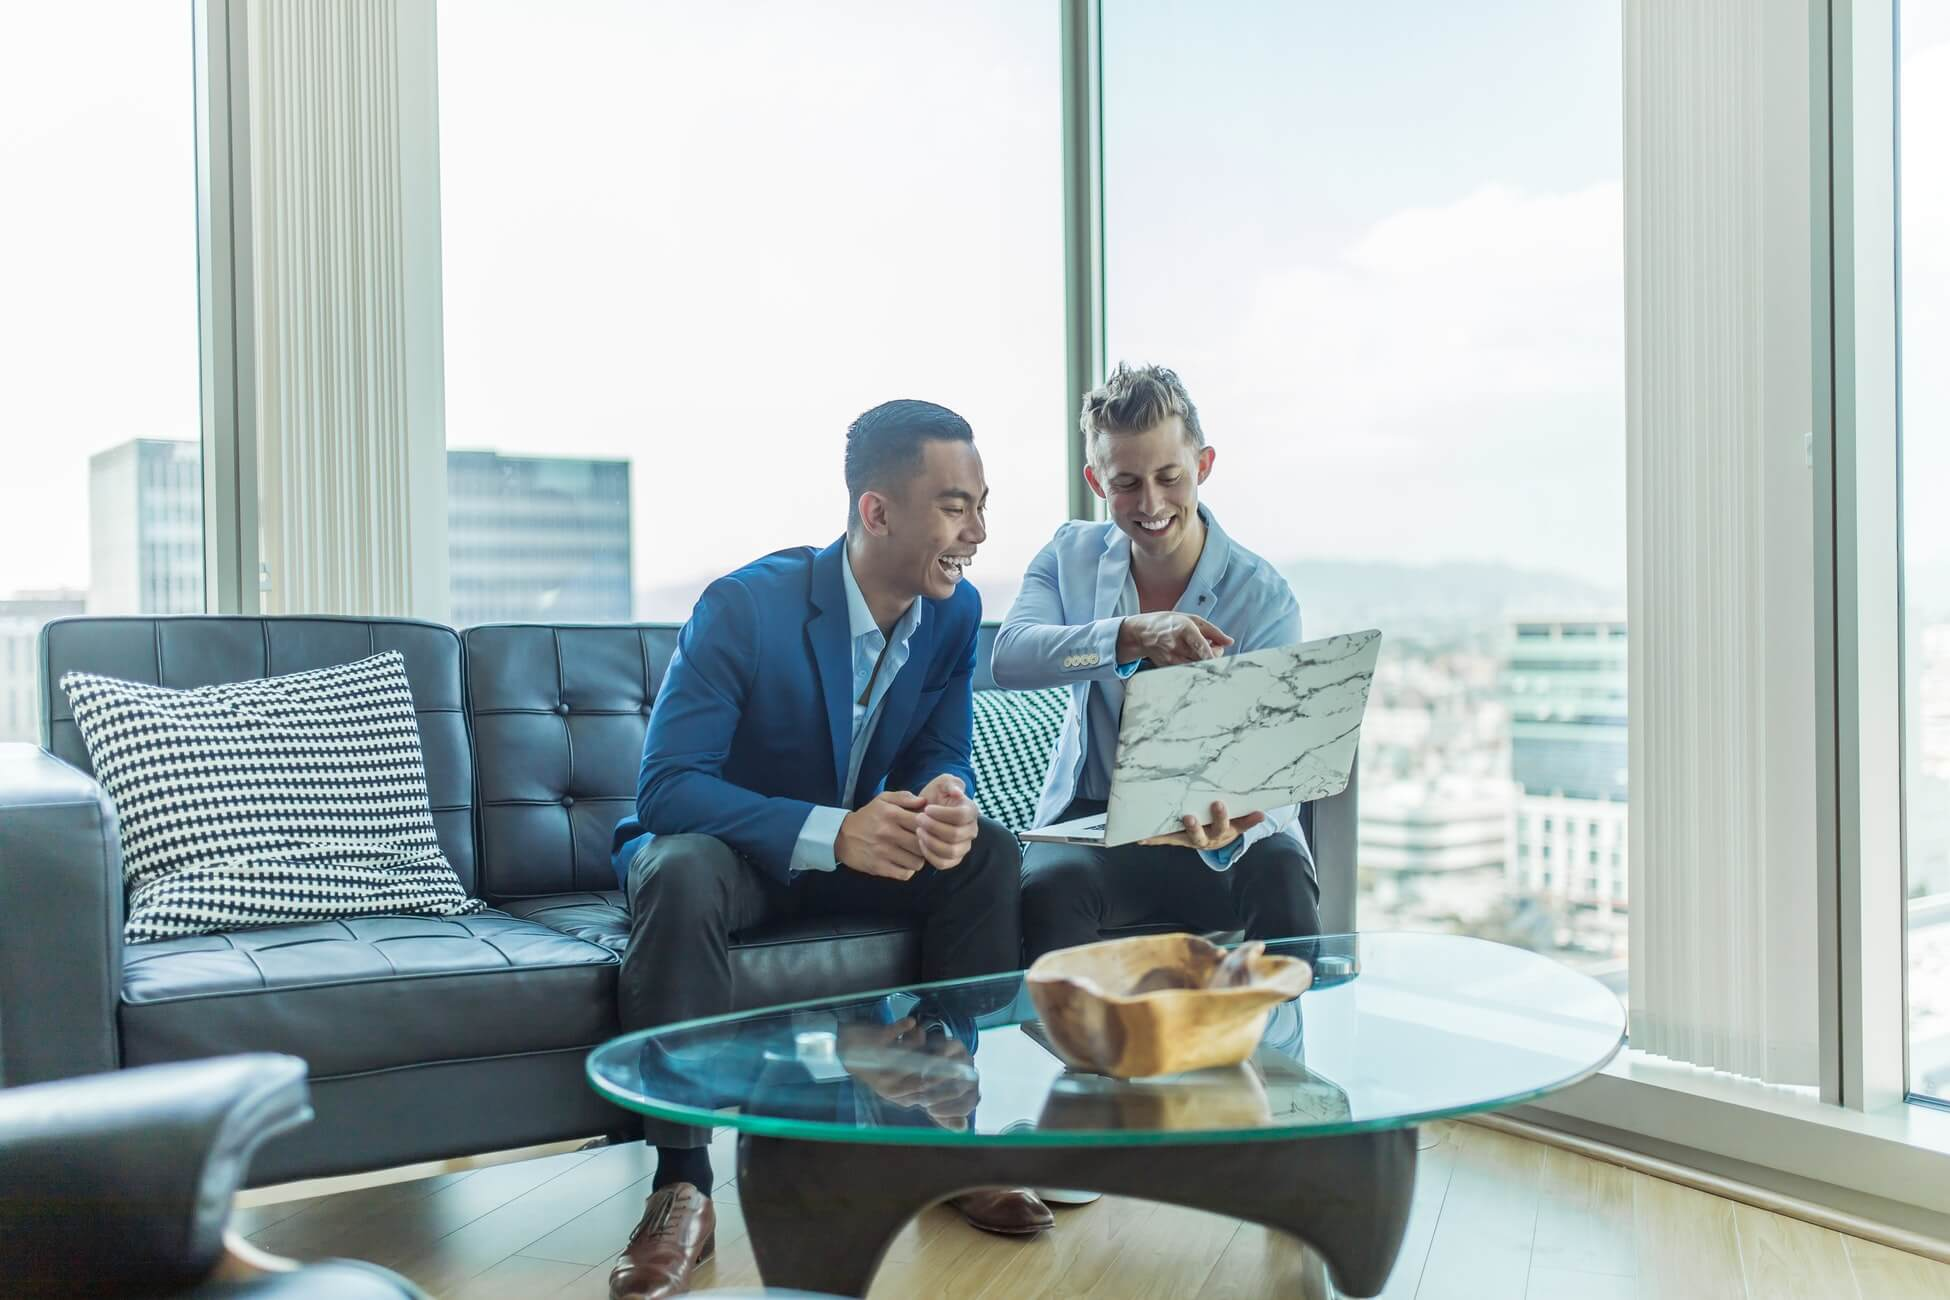 Sofa In A Box Companies Techweek The Trials Tribulations And Wins Of Couch In A Box